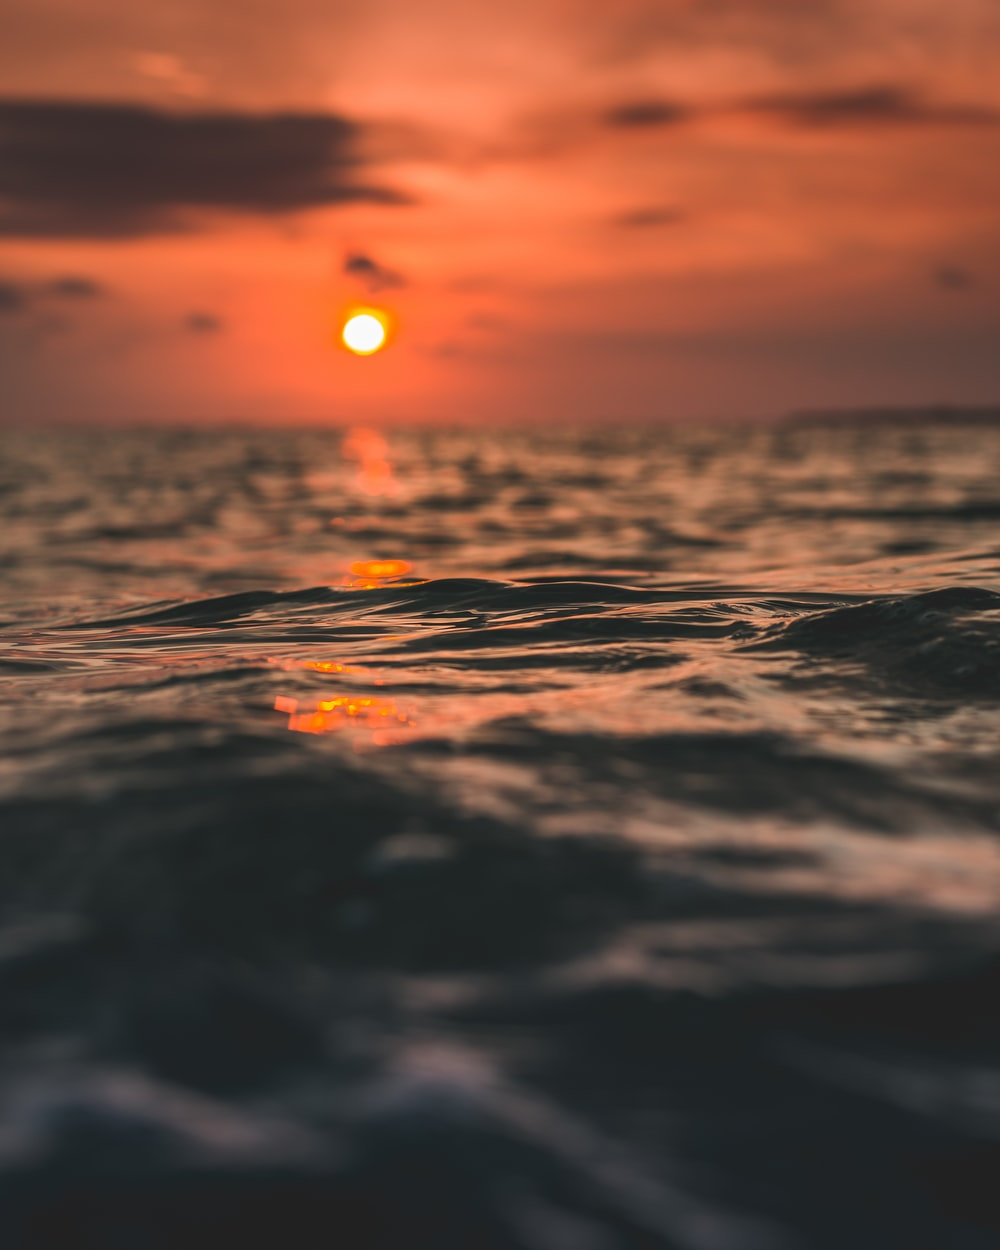 closeup photo of body of water during golden hour